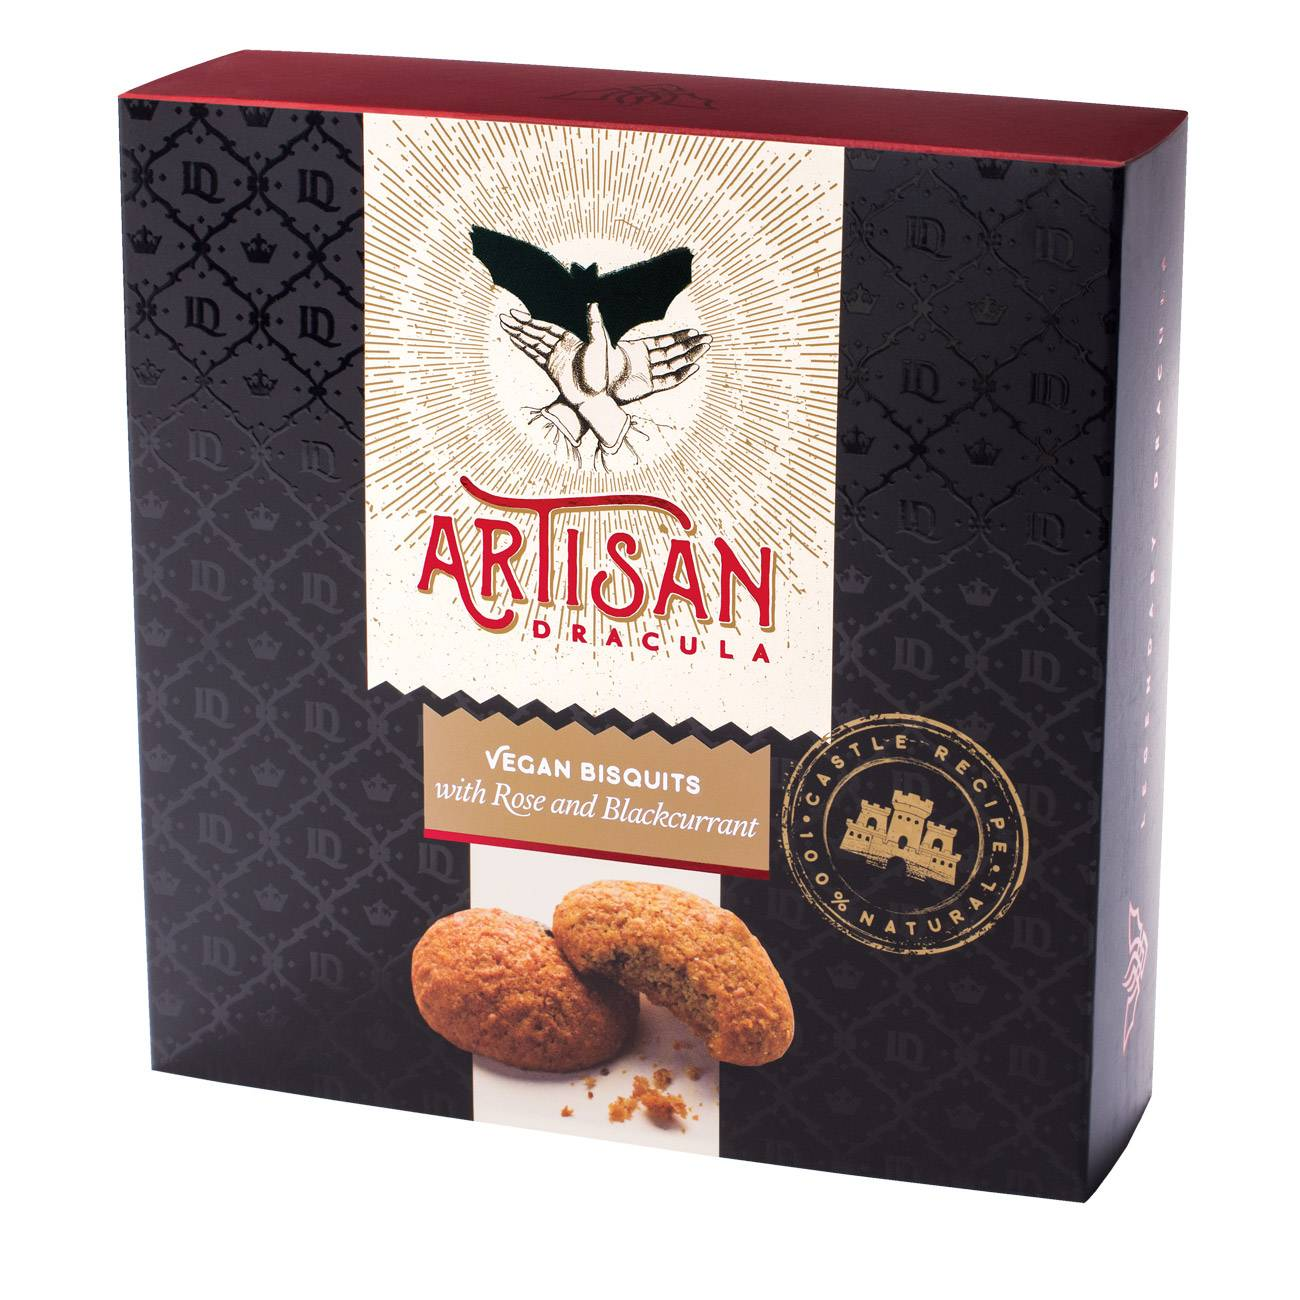 ARTISAN BISQUITS ROSE AND BLACKCURRANT 180 Grame